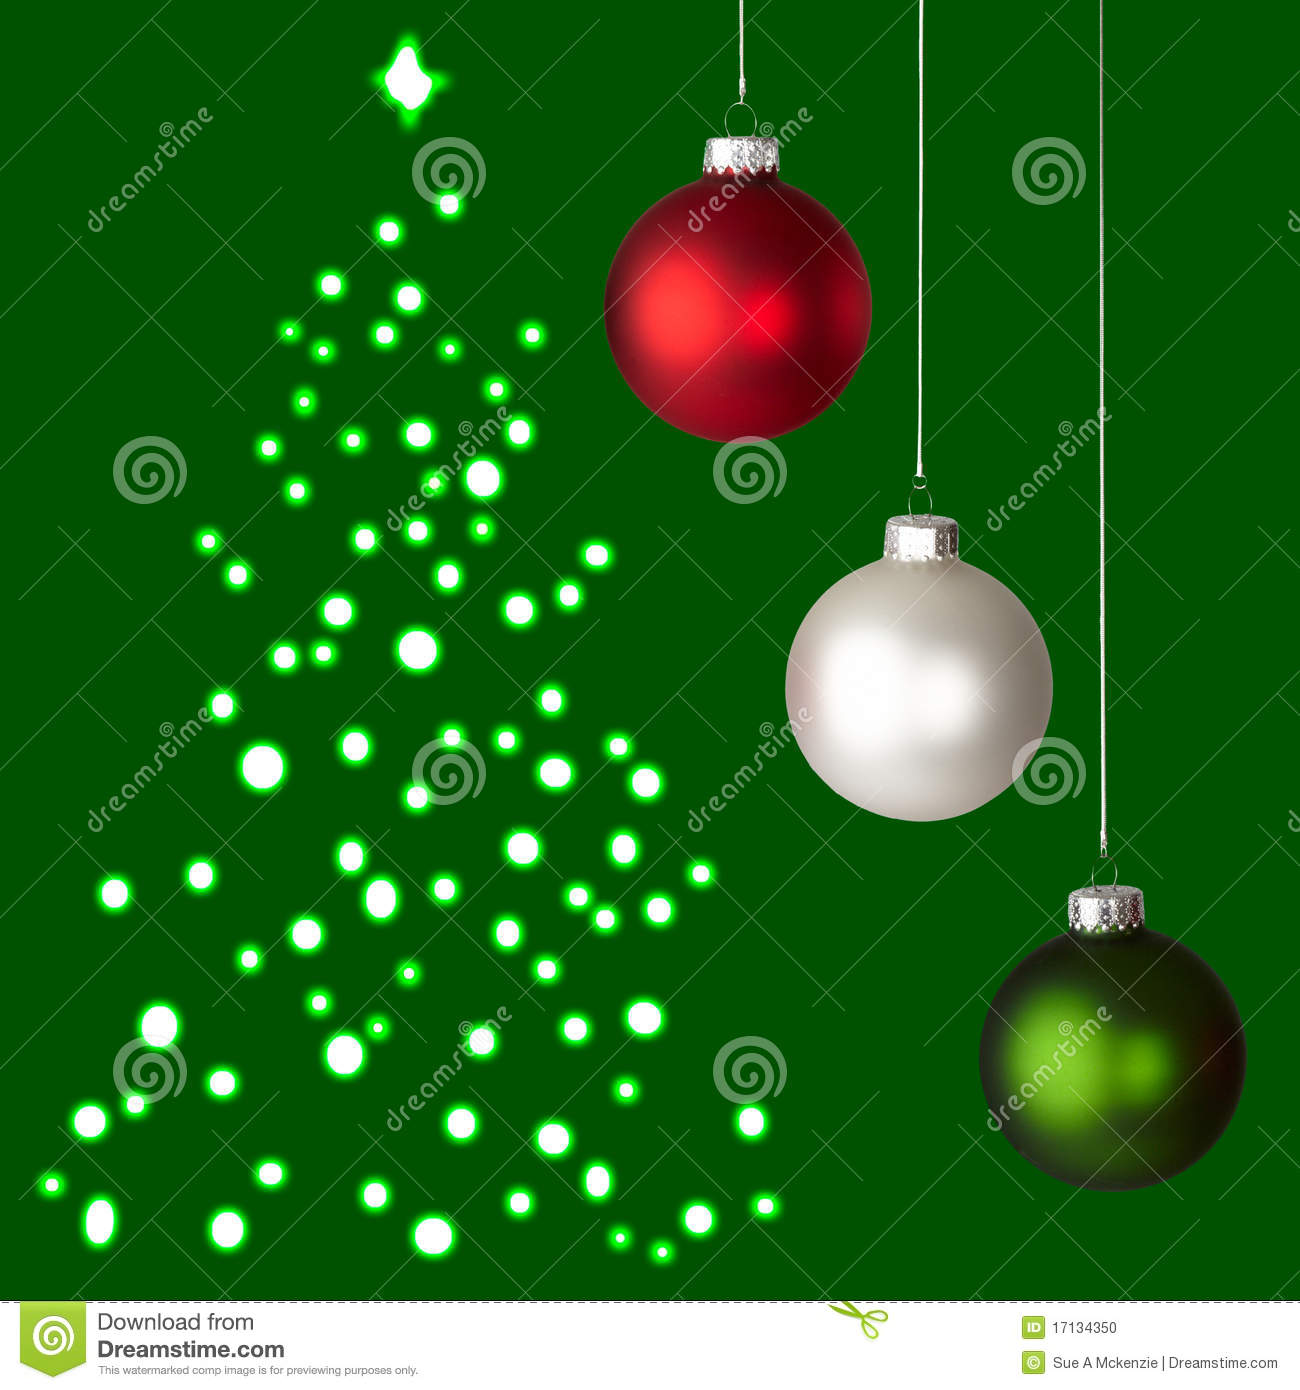 Red green and white christmas ornaments - White Christmas Tree With Red And Green Decorations Photo 21